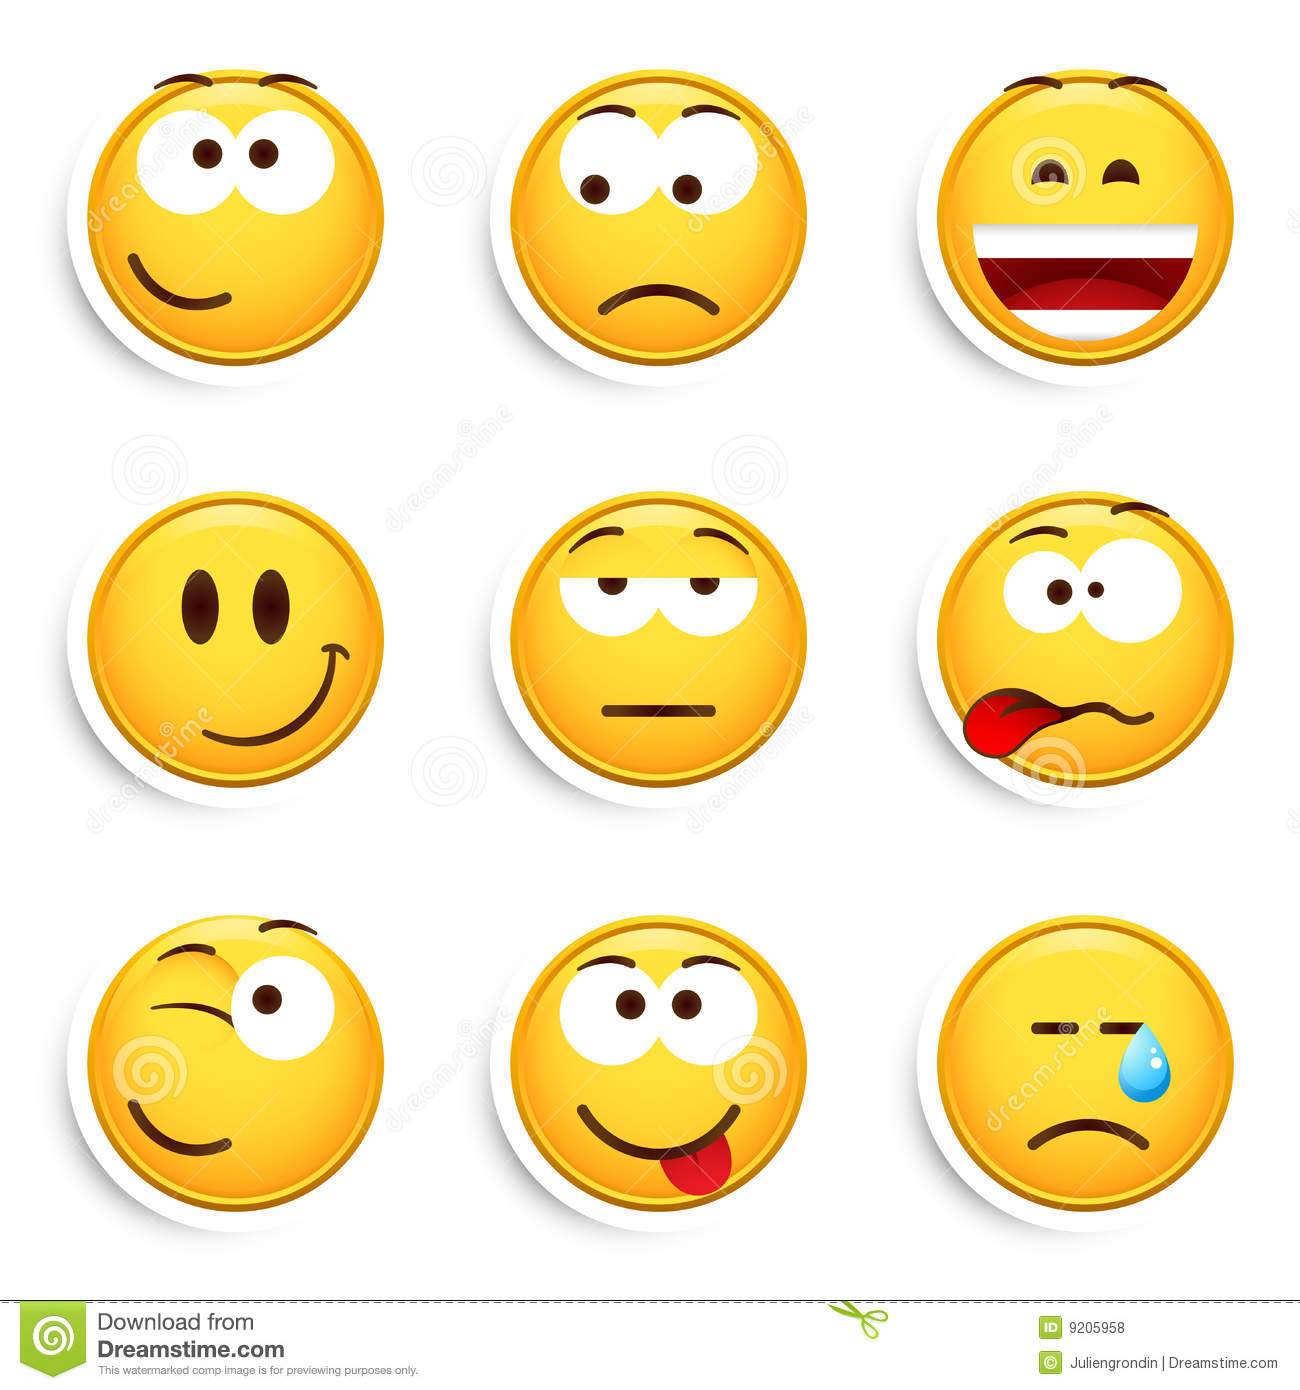 Smileys clipart bored Clipart Savoronmorehead Clipart Emoticons Free